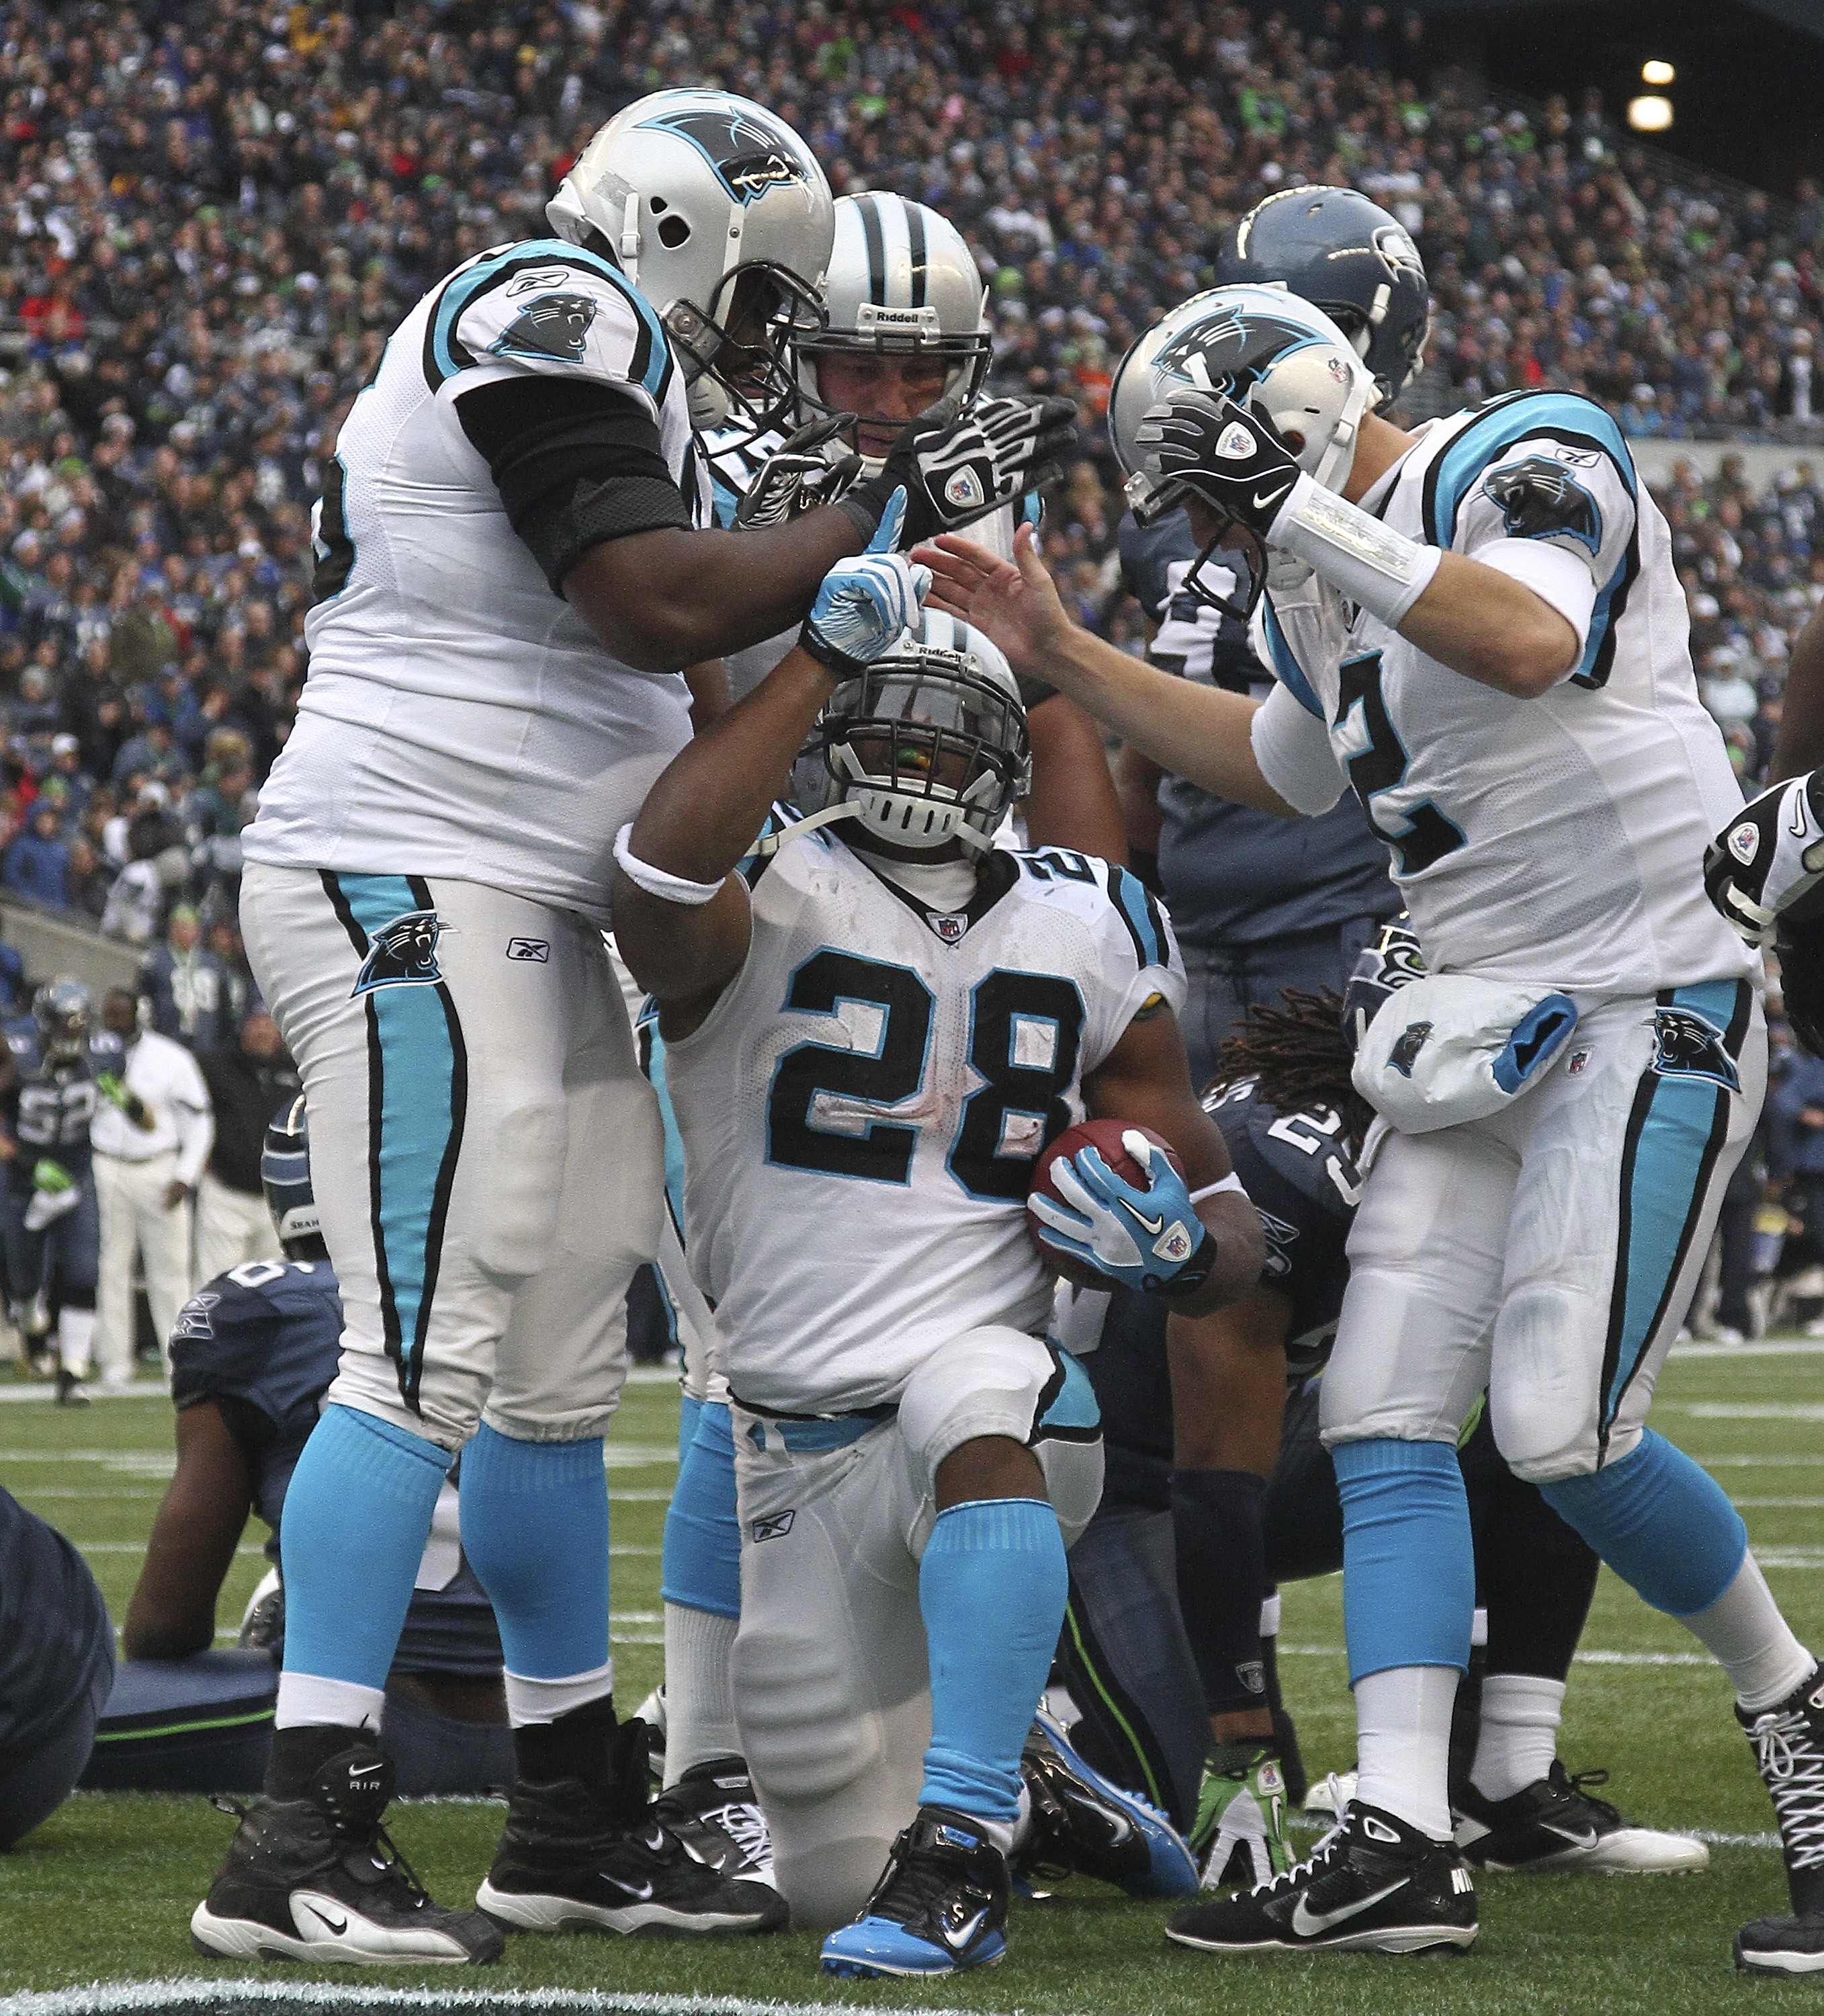 SEATTLE, WA - DECEMBER 05:  Running back Jonathan Stewart #28 of the Carolina Panthers celebrates with teammates after scoring a touchdown in the second quarter against the Seattle Seahawks at Qwest Field on December 5, 2010 in Seattle, Washington. The Se